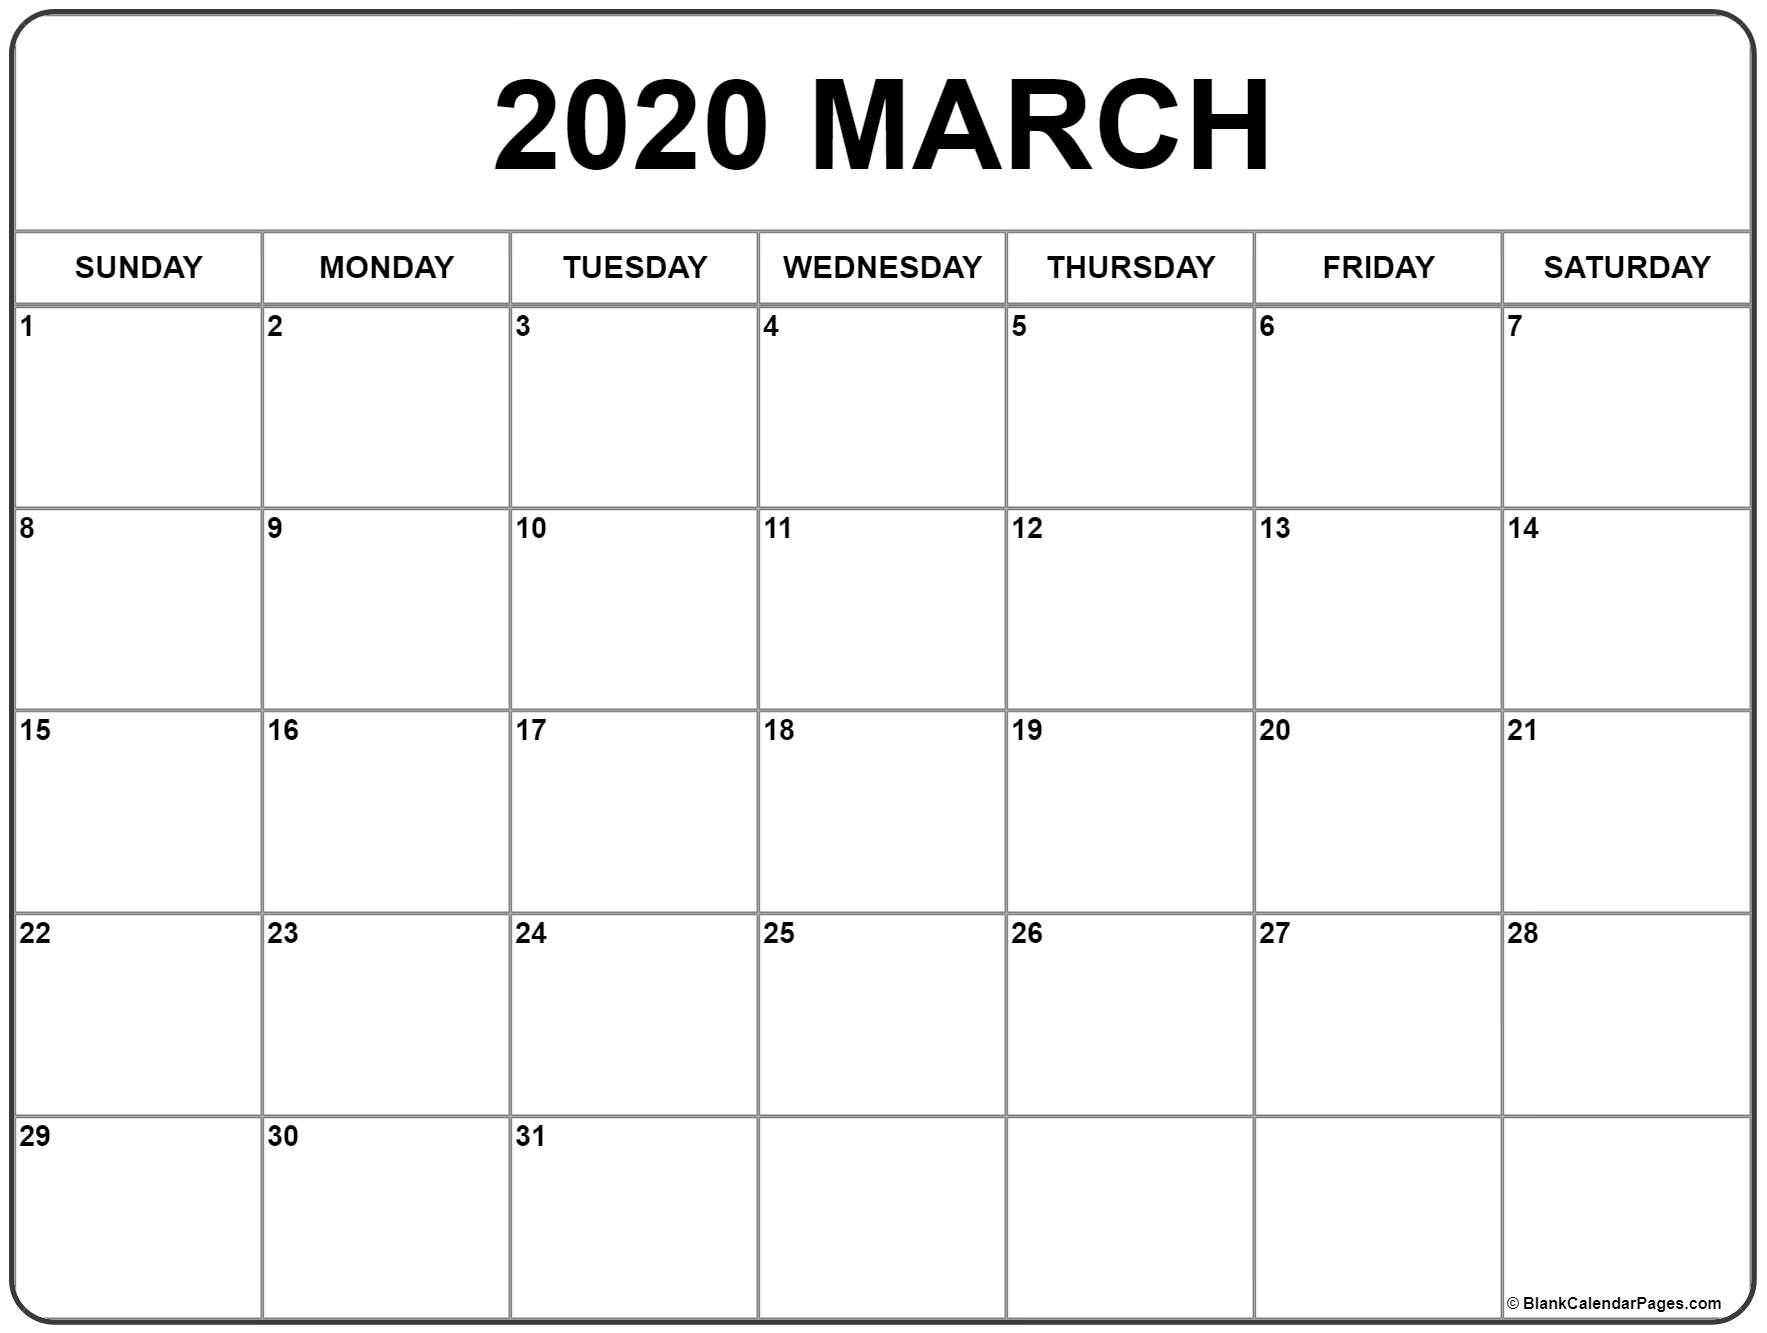 March 2020 Calendar | Free Printable Monthly Calendars within 2020 Calender With Space To Write